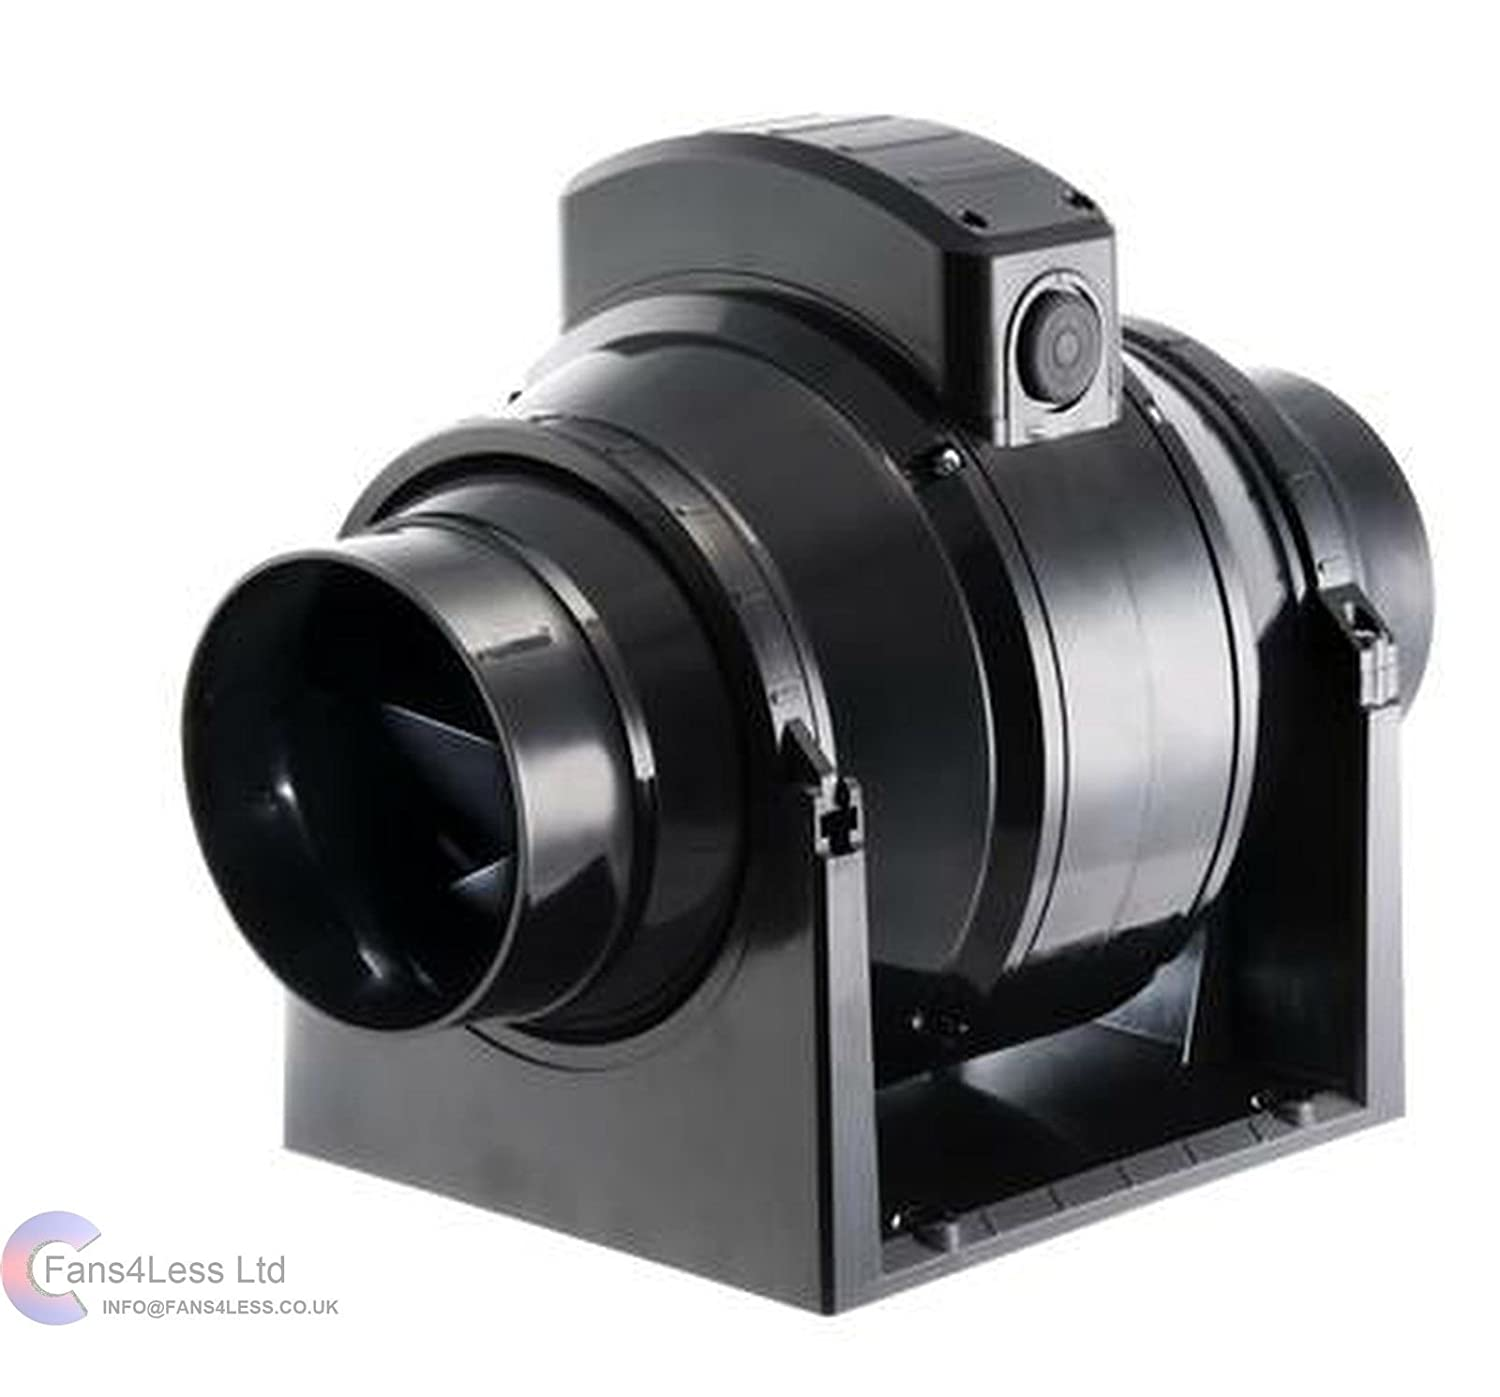 Rdl bathroom extractor fan - Manrose Mf100t Mixed Flow In Line Extractor Fan With Timer For Use With 100mm 4 Inch Ducting